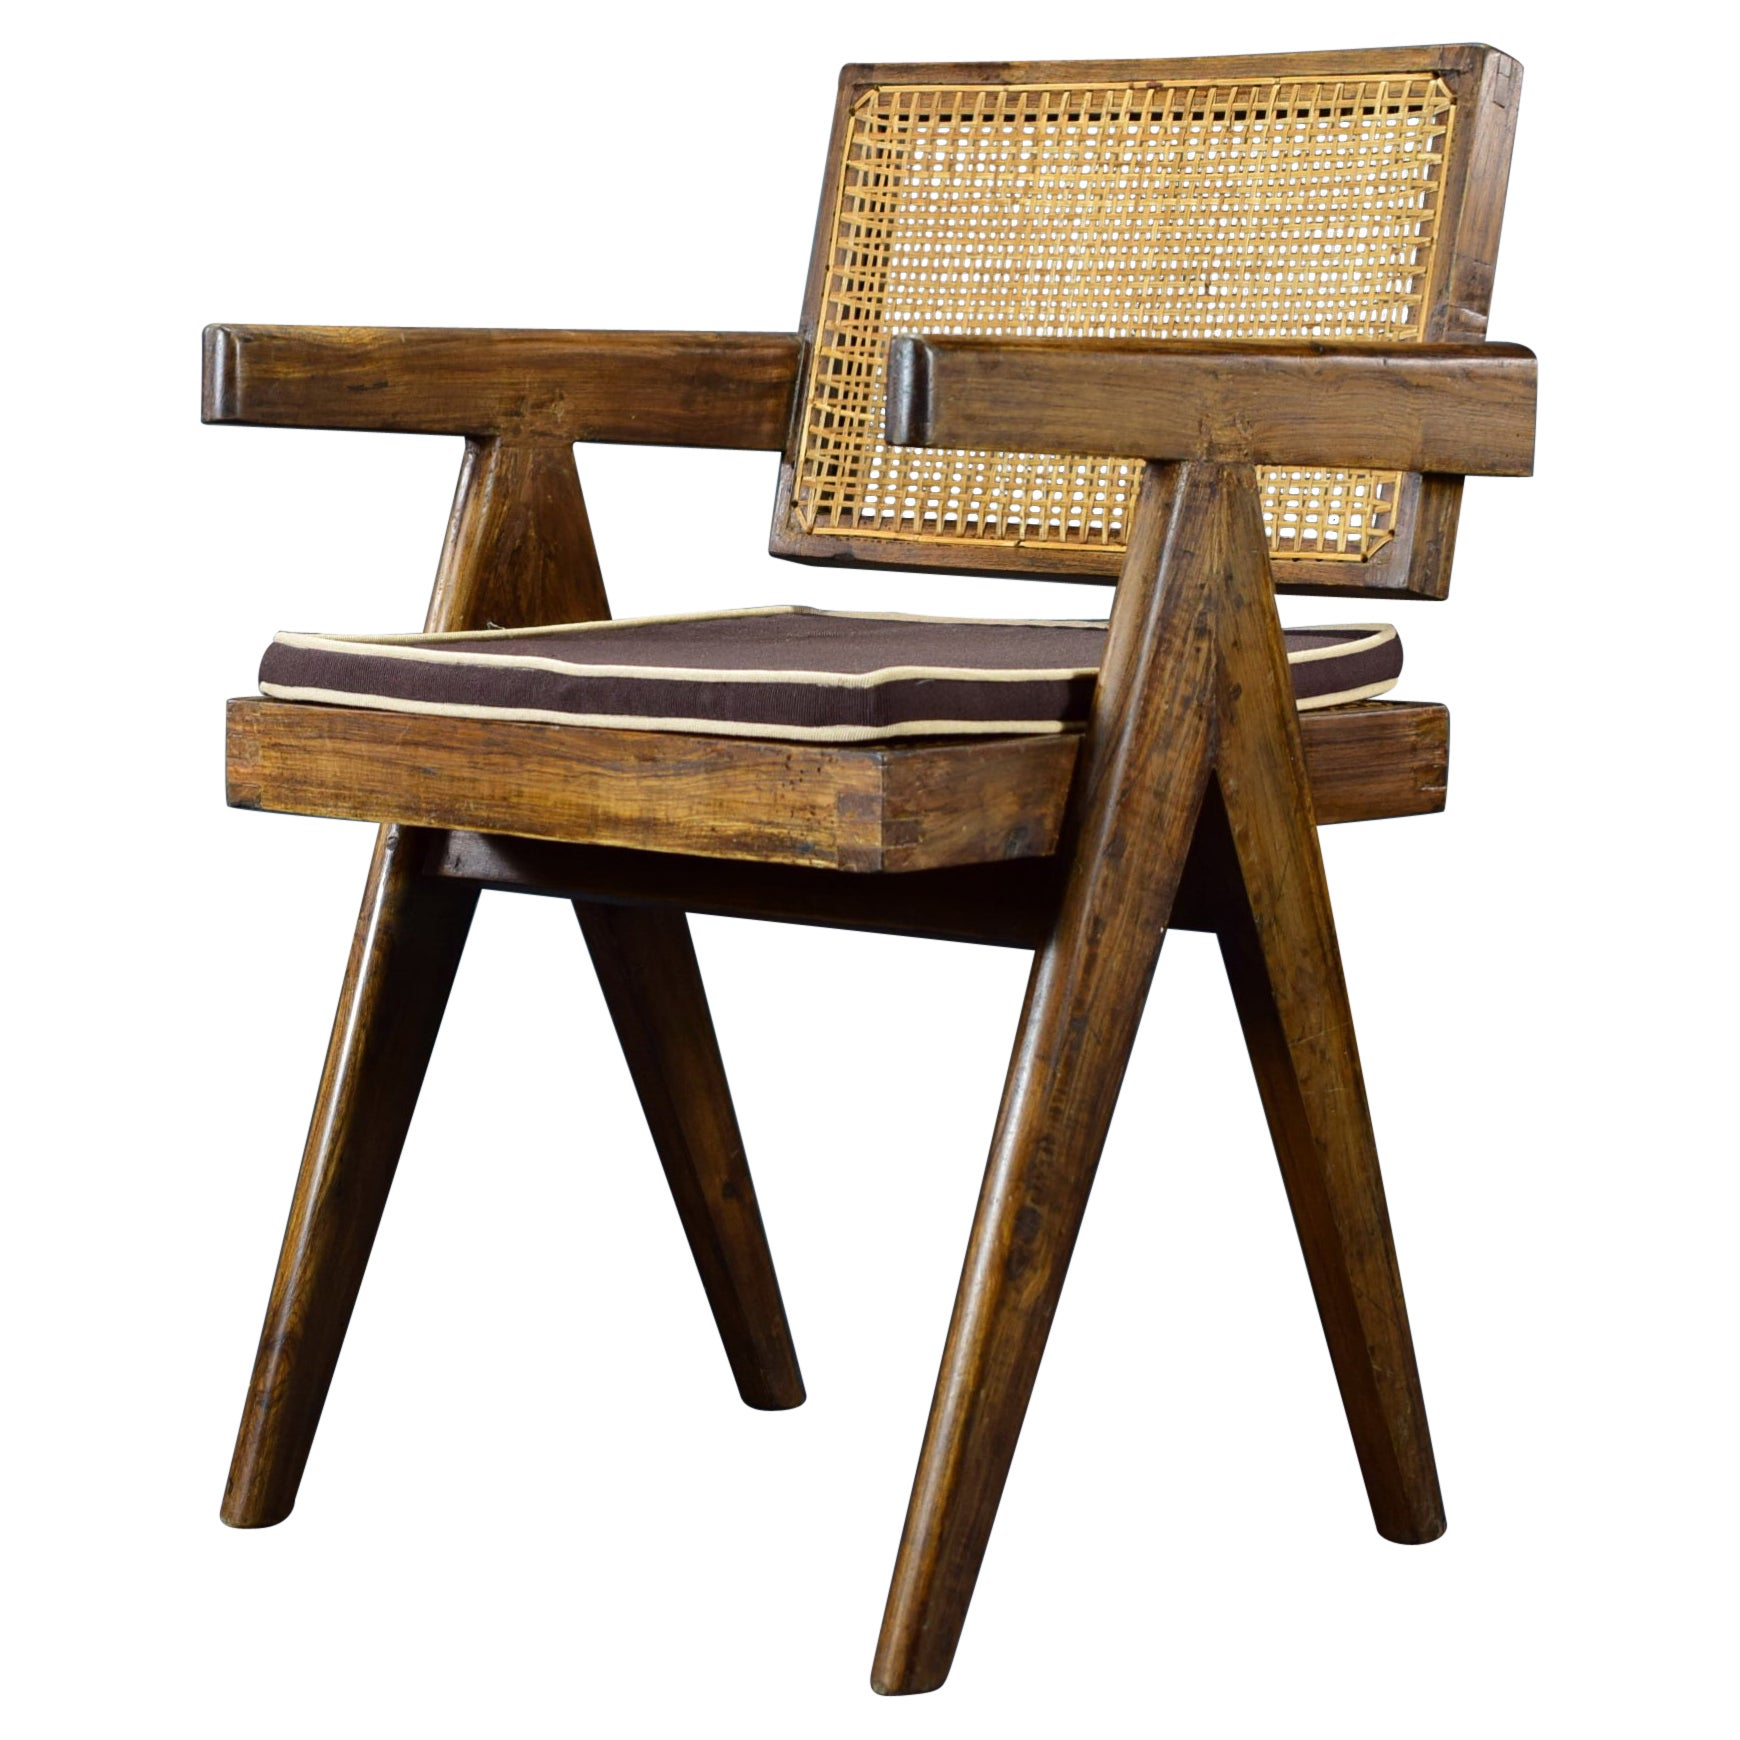 Pierre Jeanneret Office Cane Chair PJ-SI-28-A Authentic Mid-Century Modern